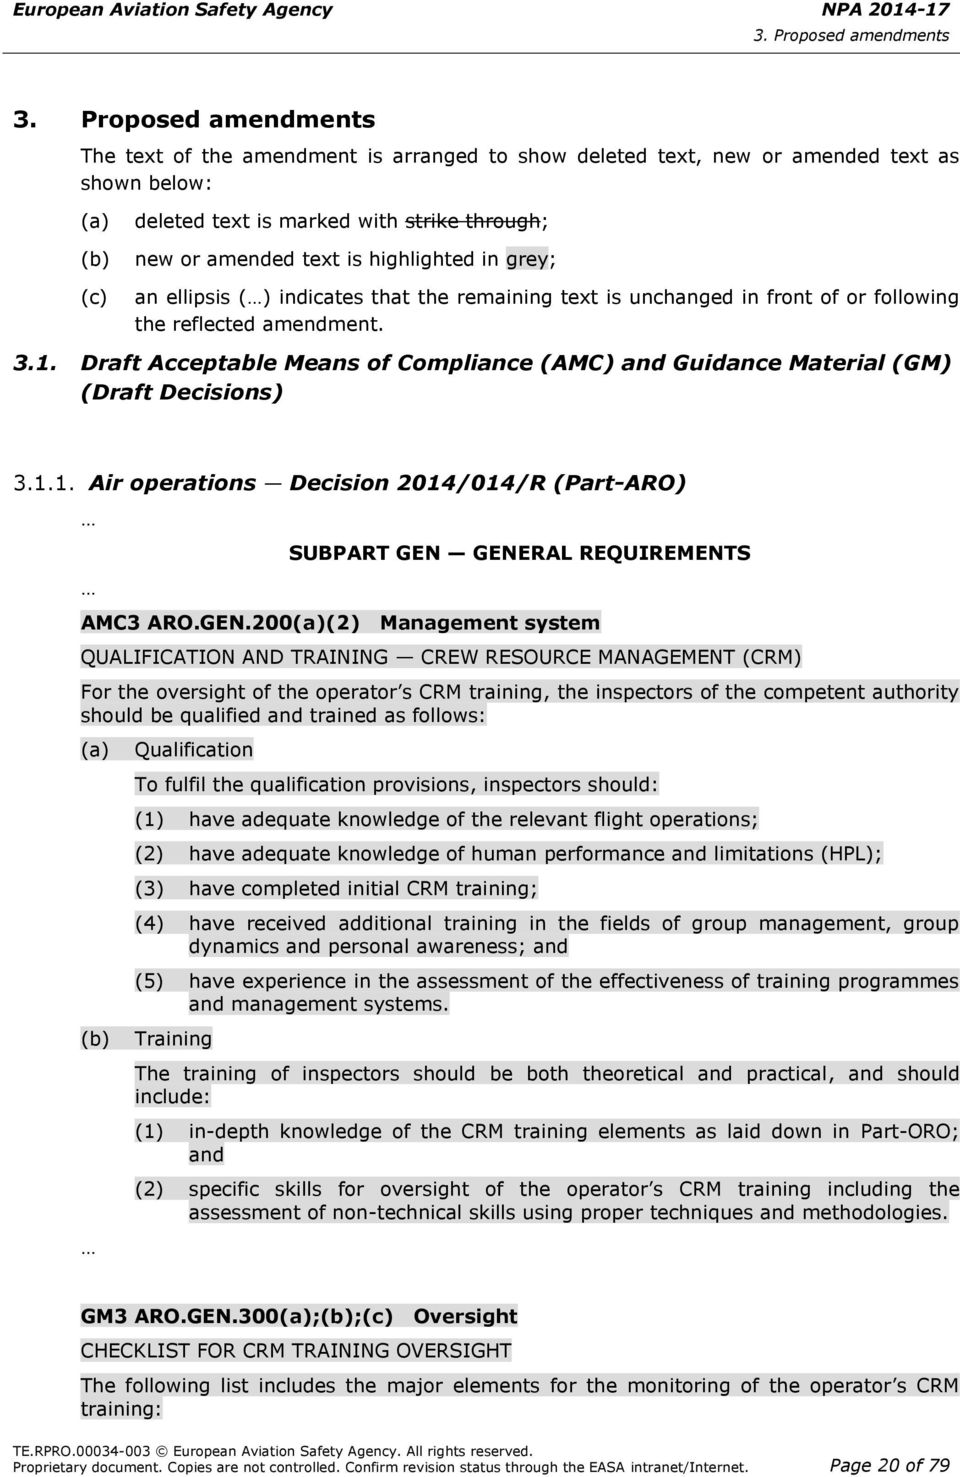 Draft Acceptable Means of Compliance (AMC) and Guidance Material (GM) (Draft Decisions) 3.1.1. Air operations Decision 2014/014/R (Part-ARO) SUBPART GEN